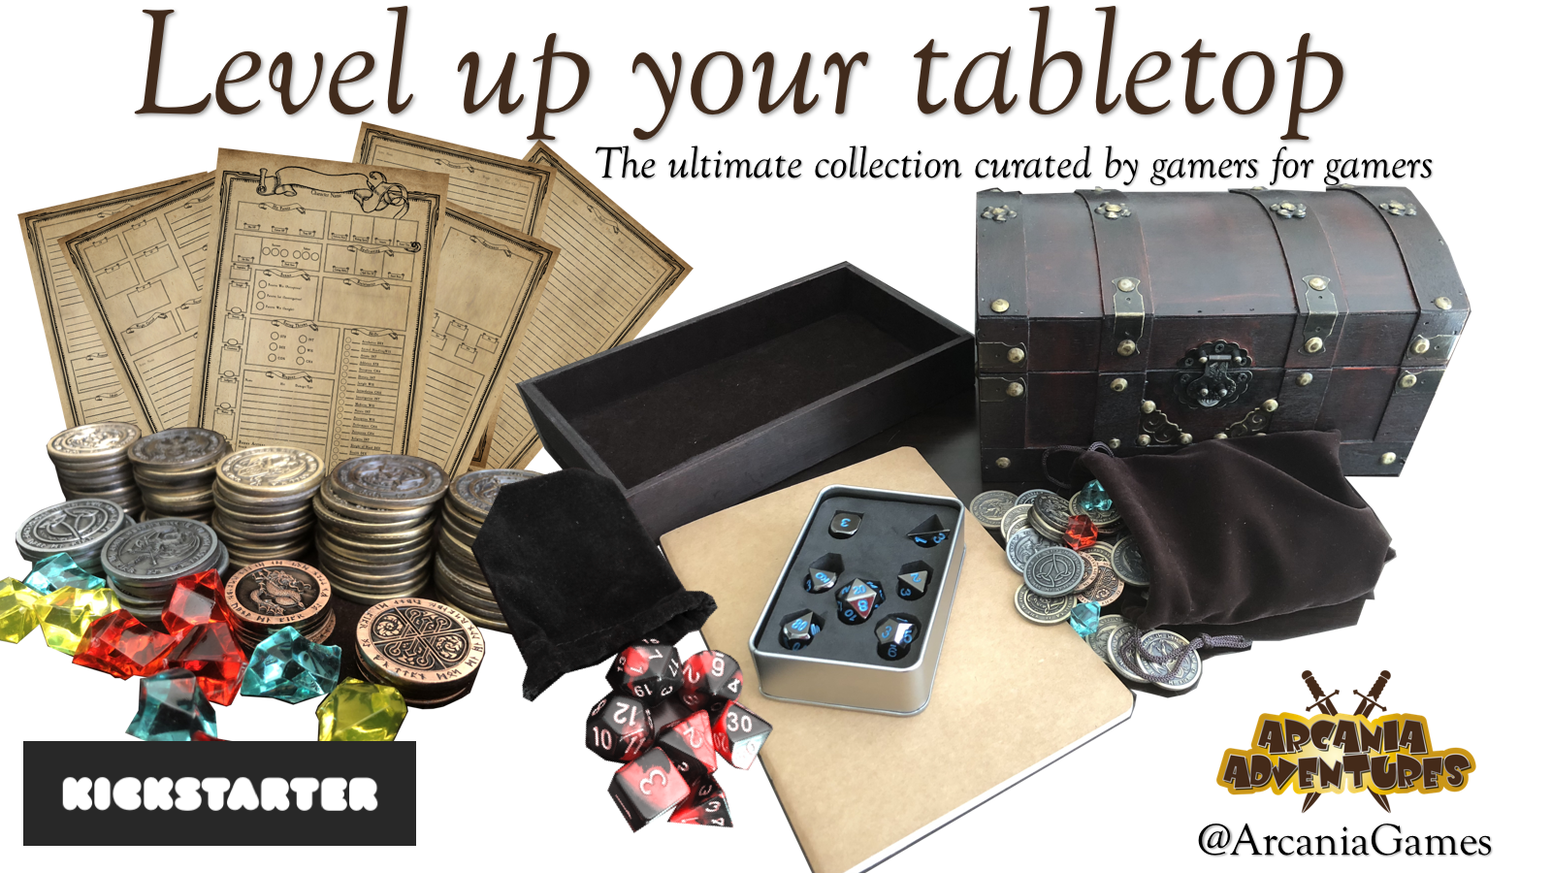 The ultimate curated collection of roleplaying accessories for your tabletop - by gamers for gamers